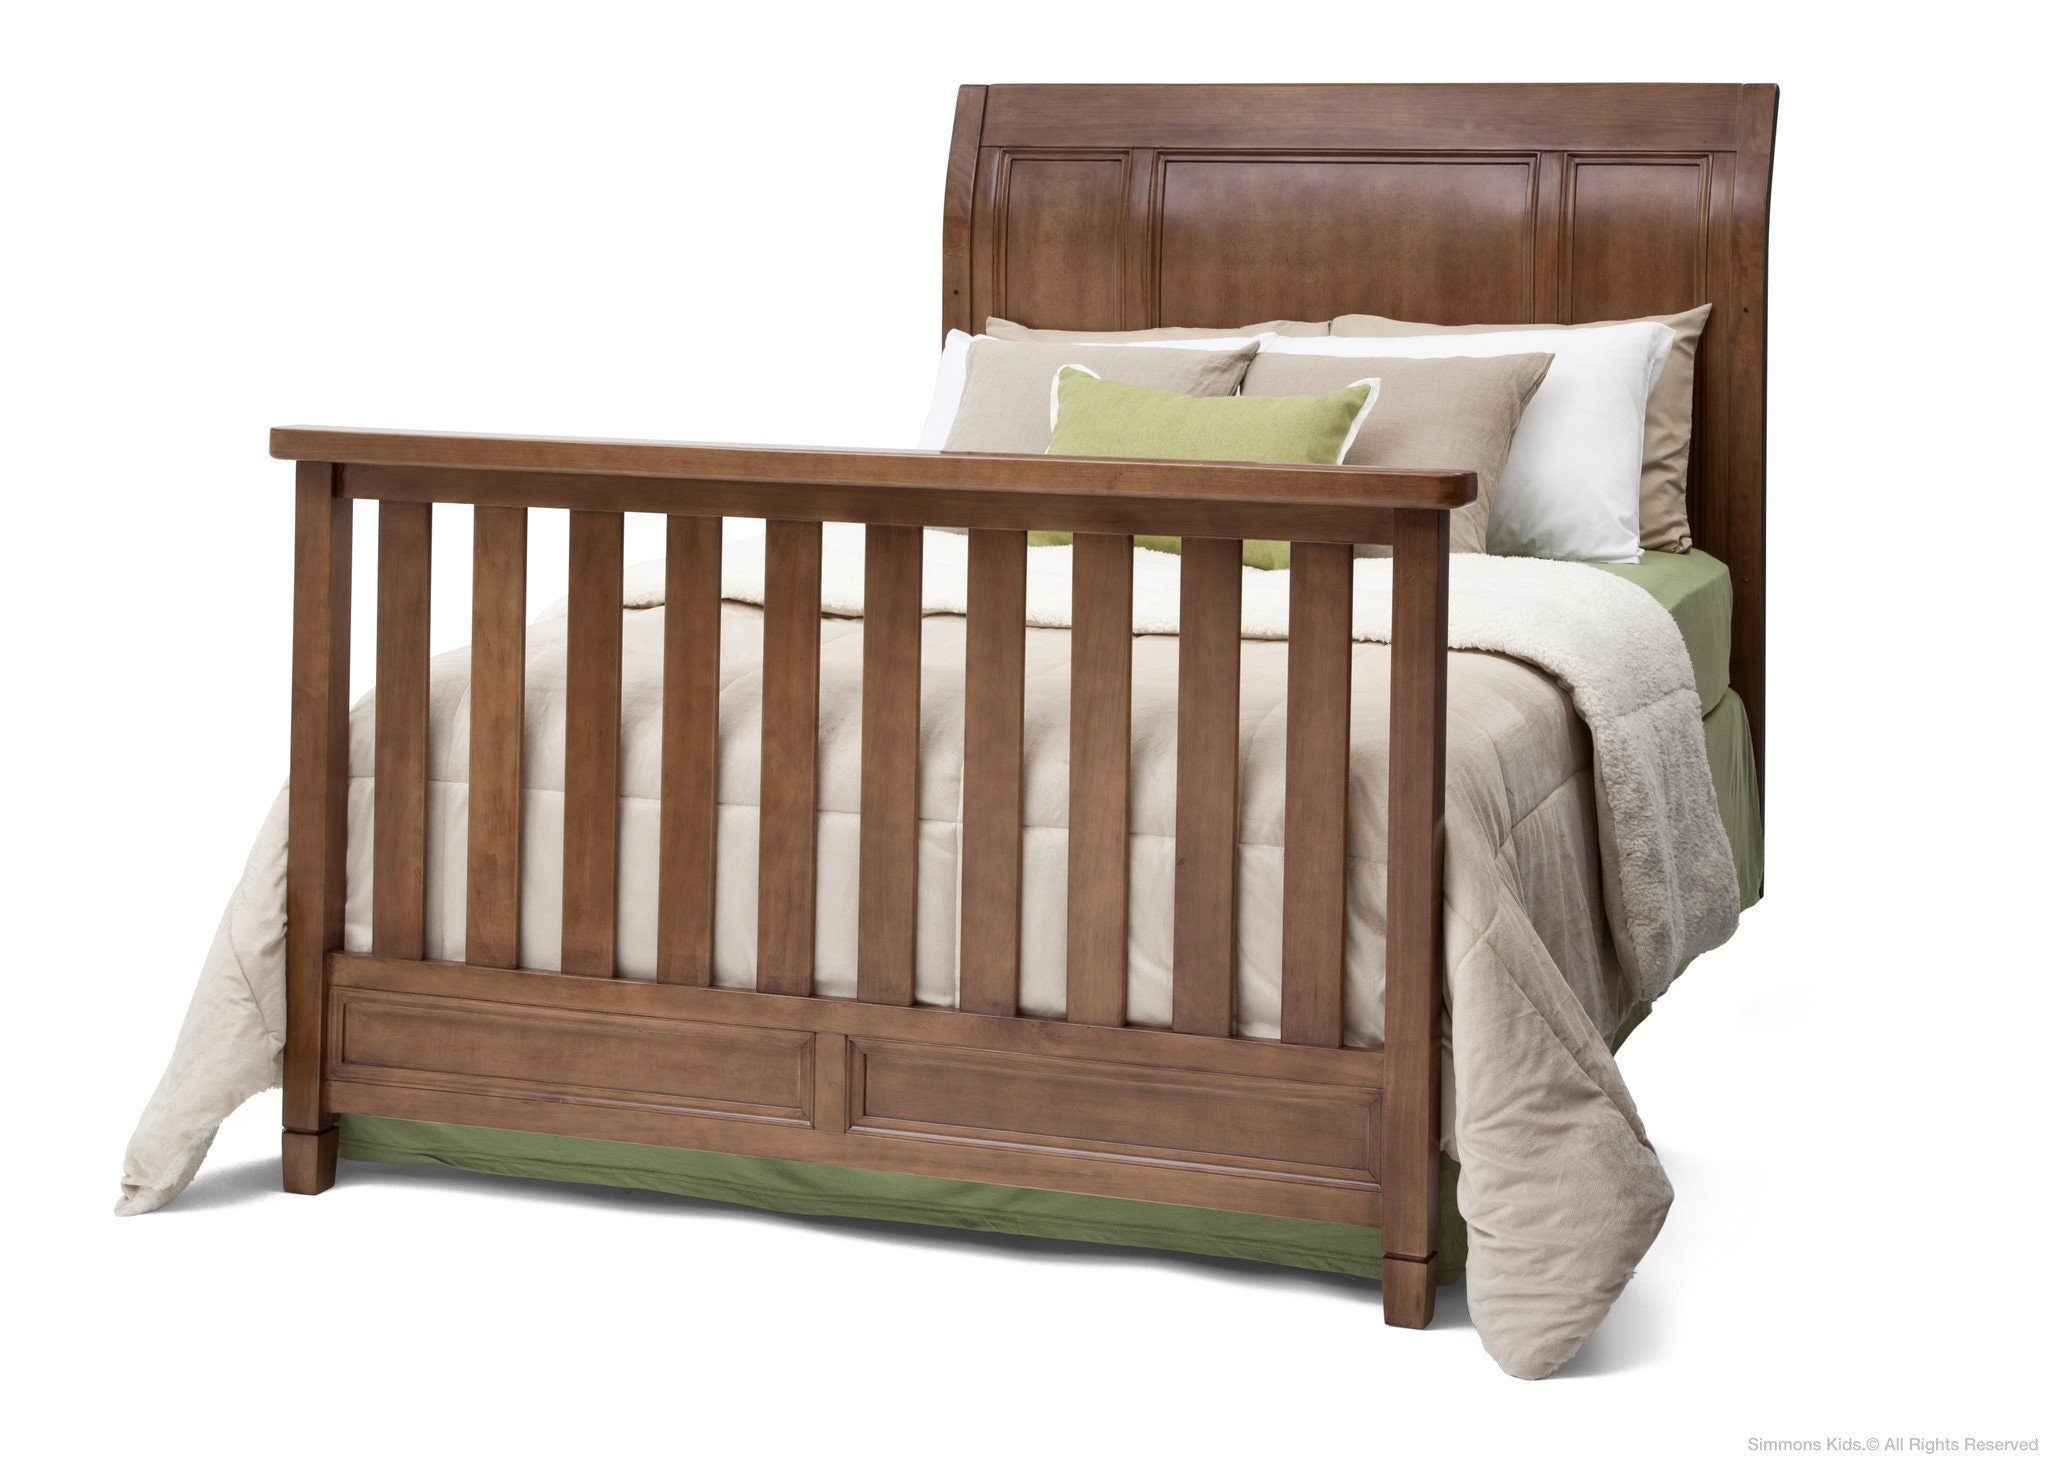 Simmons Kids Weathered Chestnut (223) Kingsley Crib 'N' More, Full-Size Bed Conversion a6a